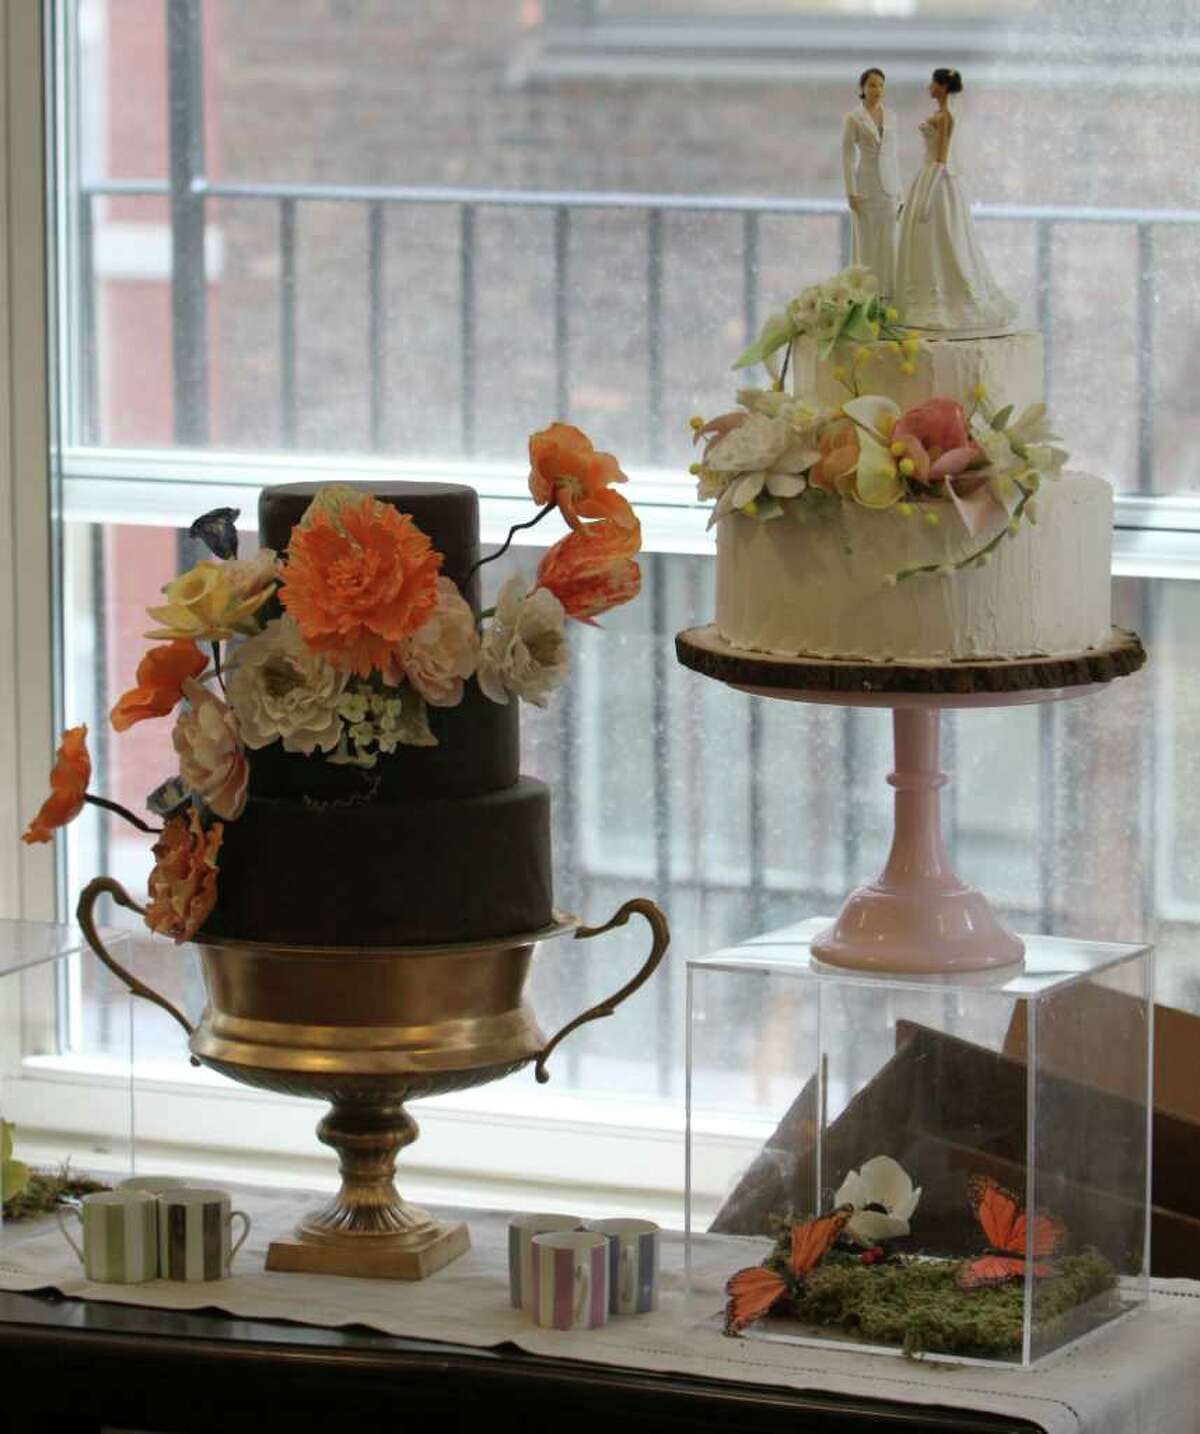 An almond cake with New York City rooftop honey buttercream icing, right, and a chocolate cake with chocolate gnash icing are on display at the Sugar Flower Cake Shop, Monday, June 27, 2011 in New York. (AP Photo/Mary Altaffer)